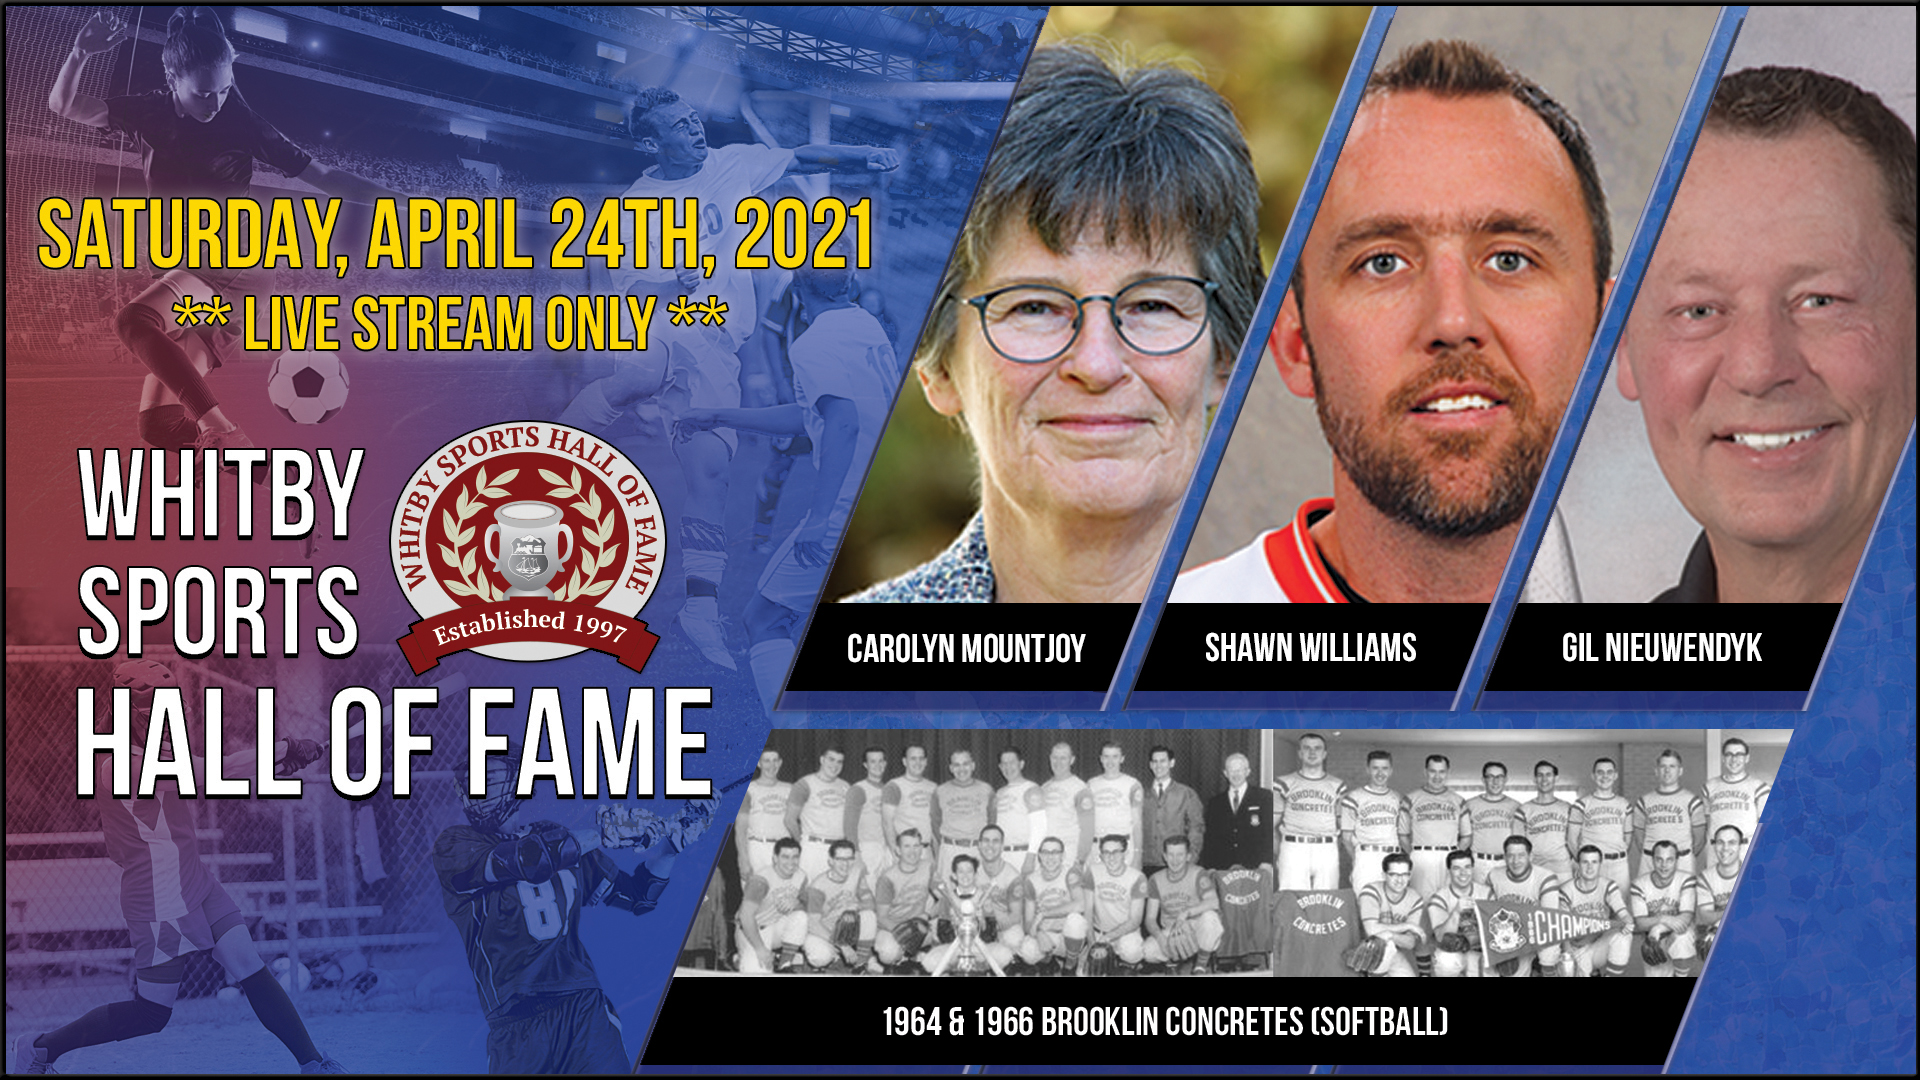 Whitby Sports Hall of Fame